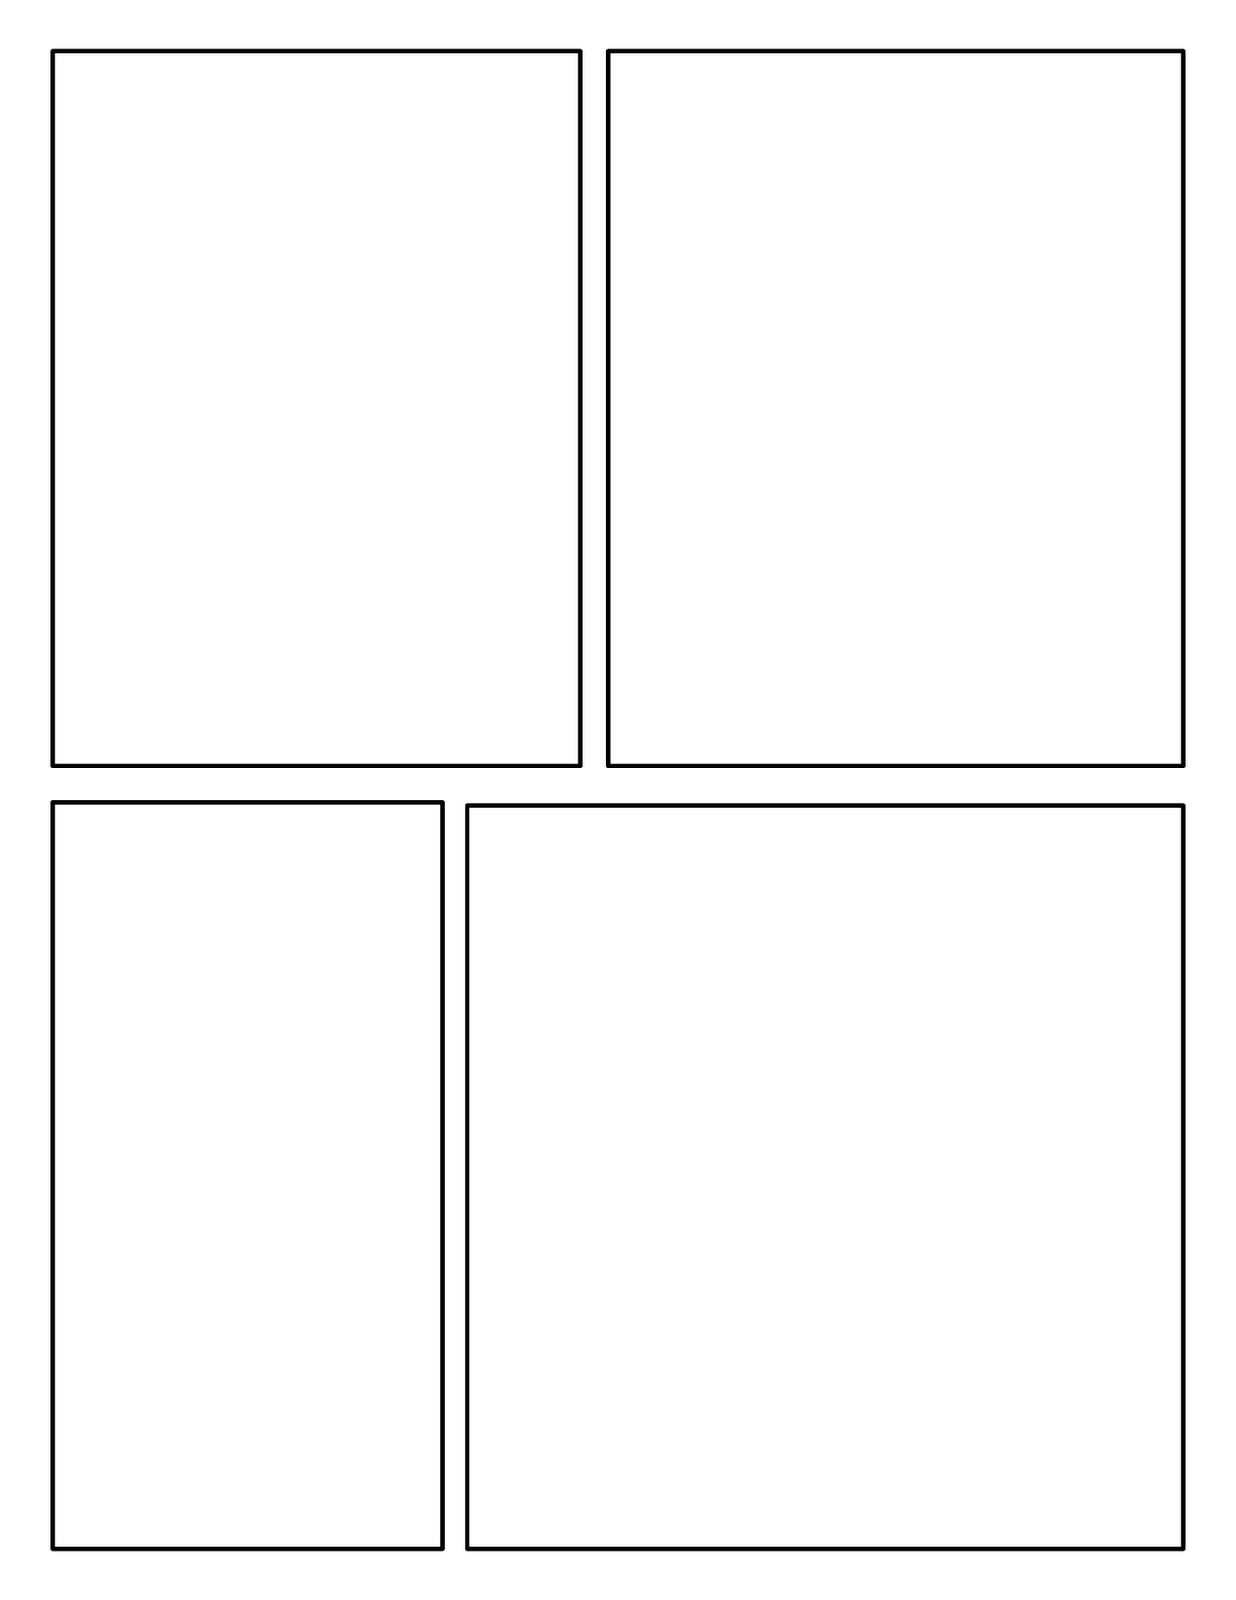 four panel comic strip template - mrs orman 39 s classroom offering choices for your readers